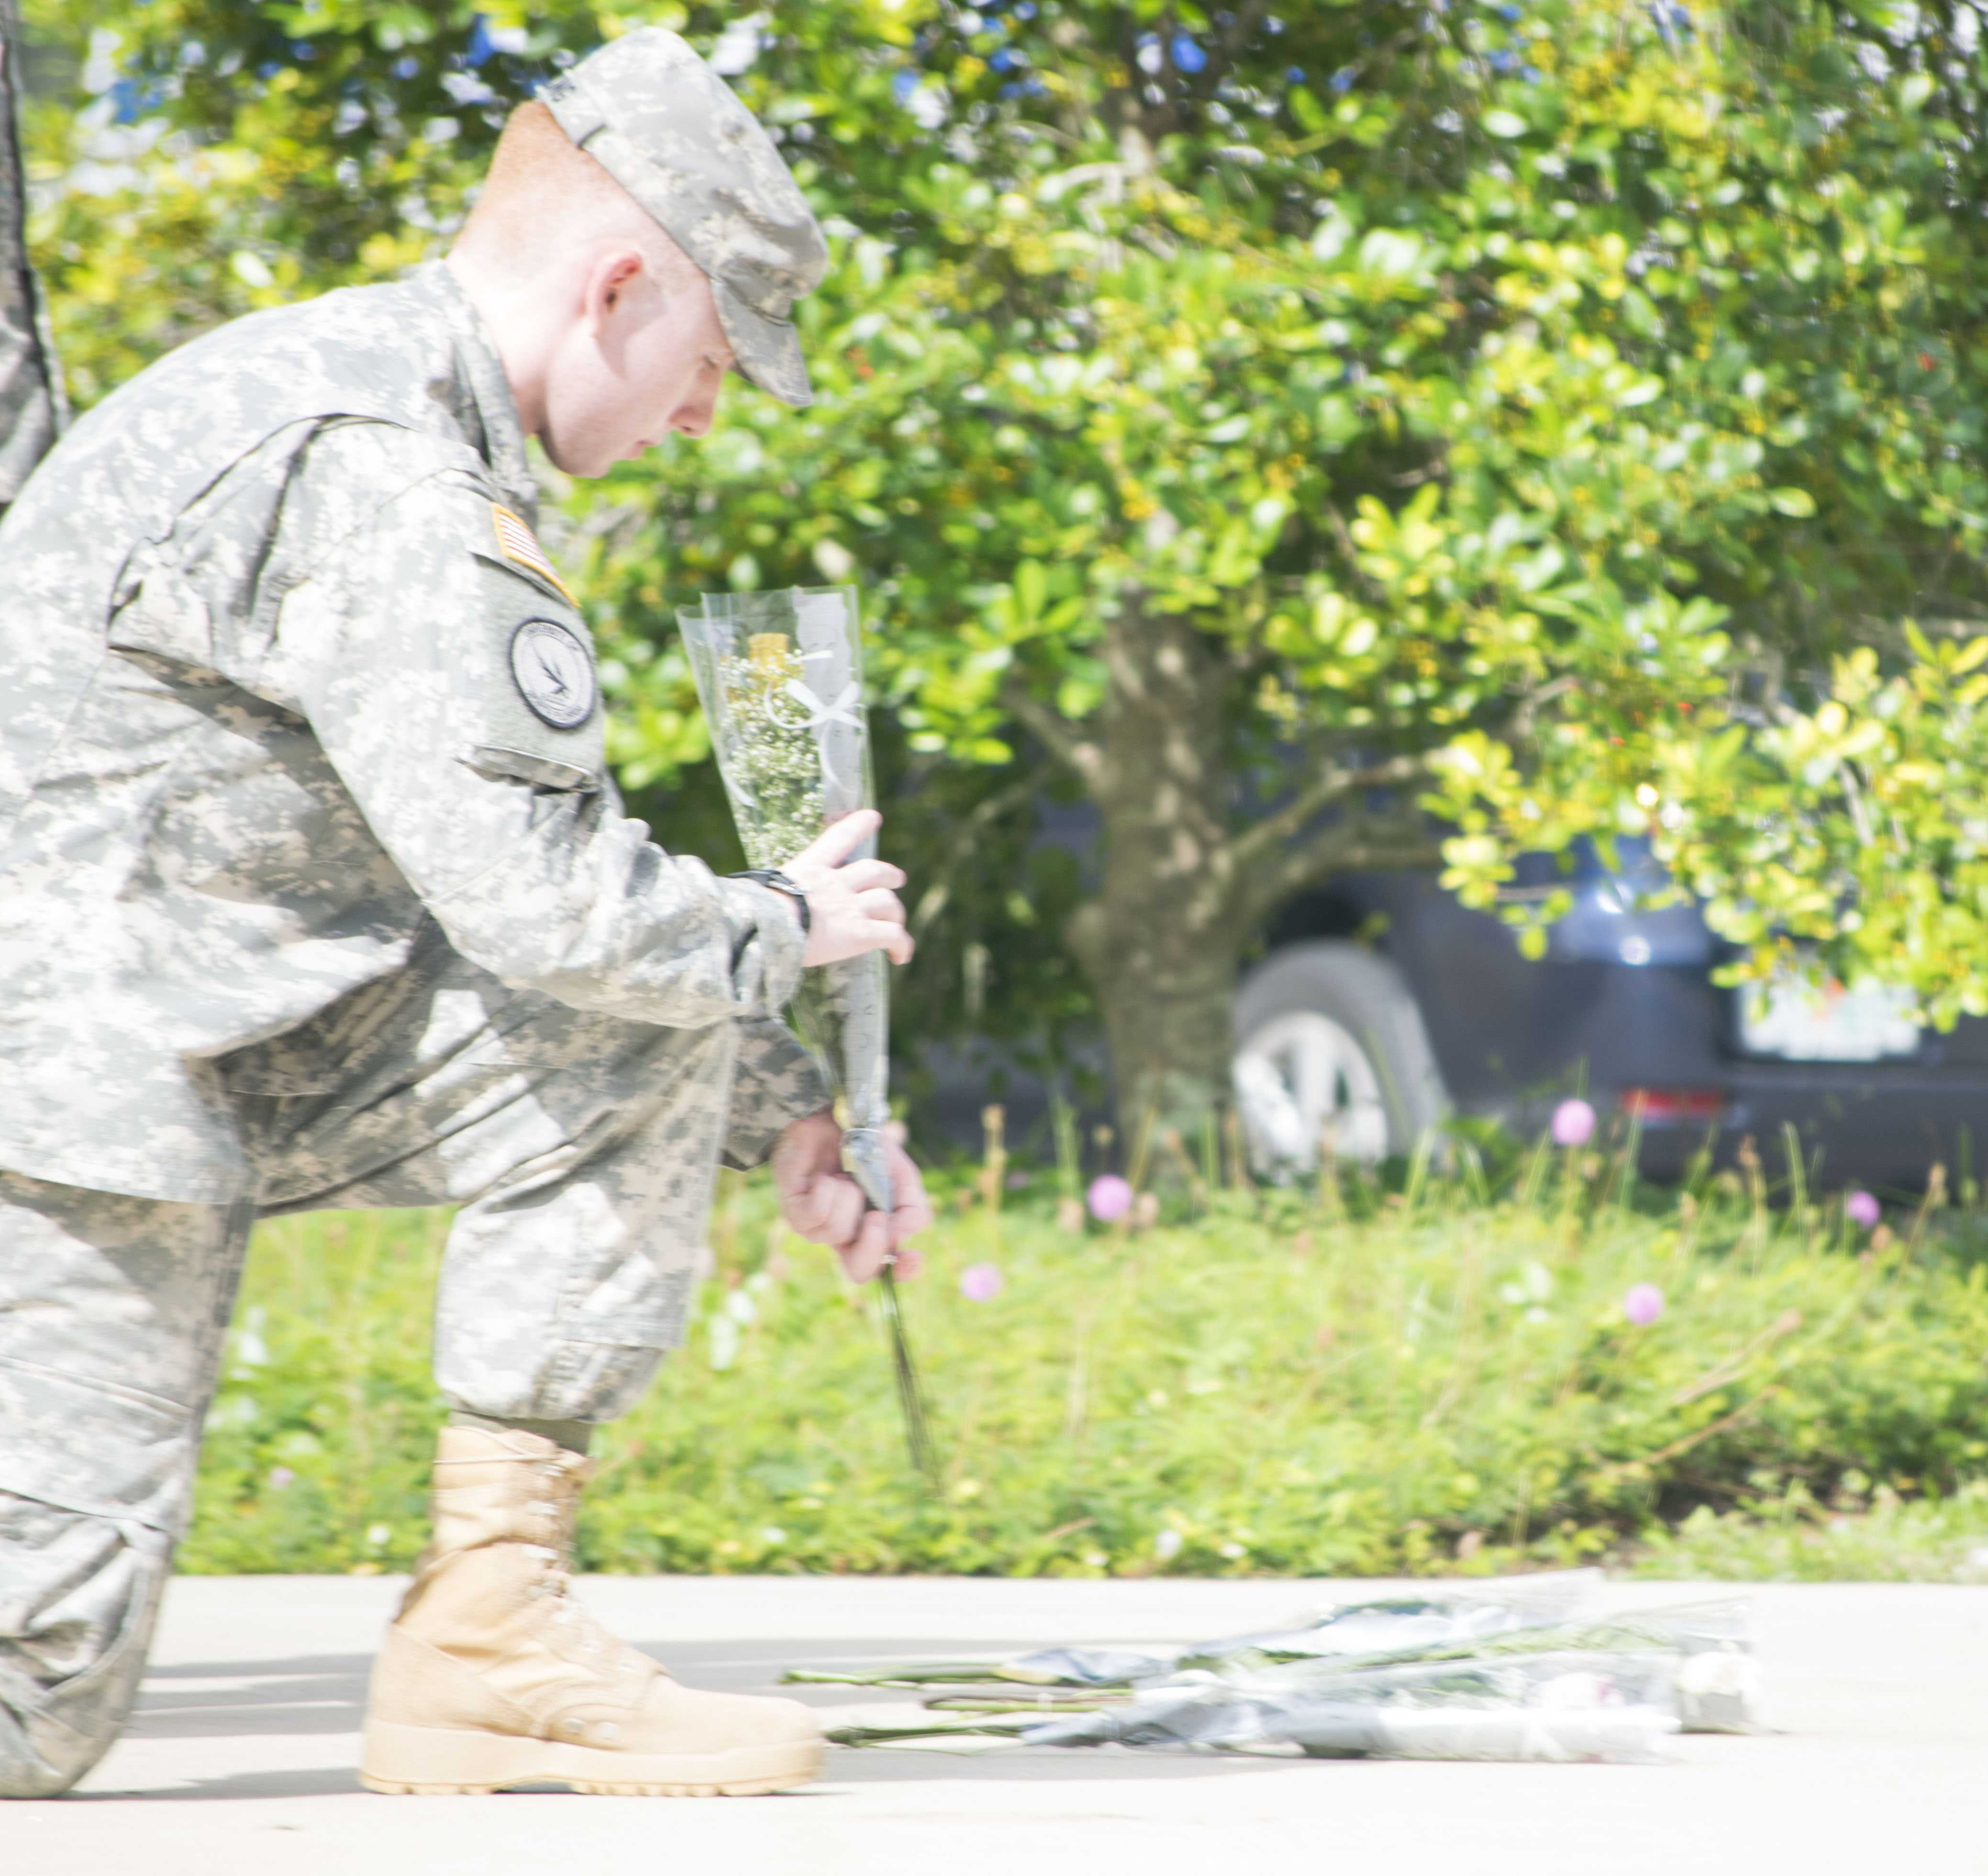 Ceremony held by UNF Army ROTC to commemorate Sept. 11